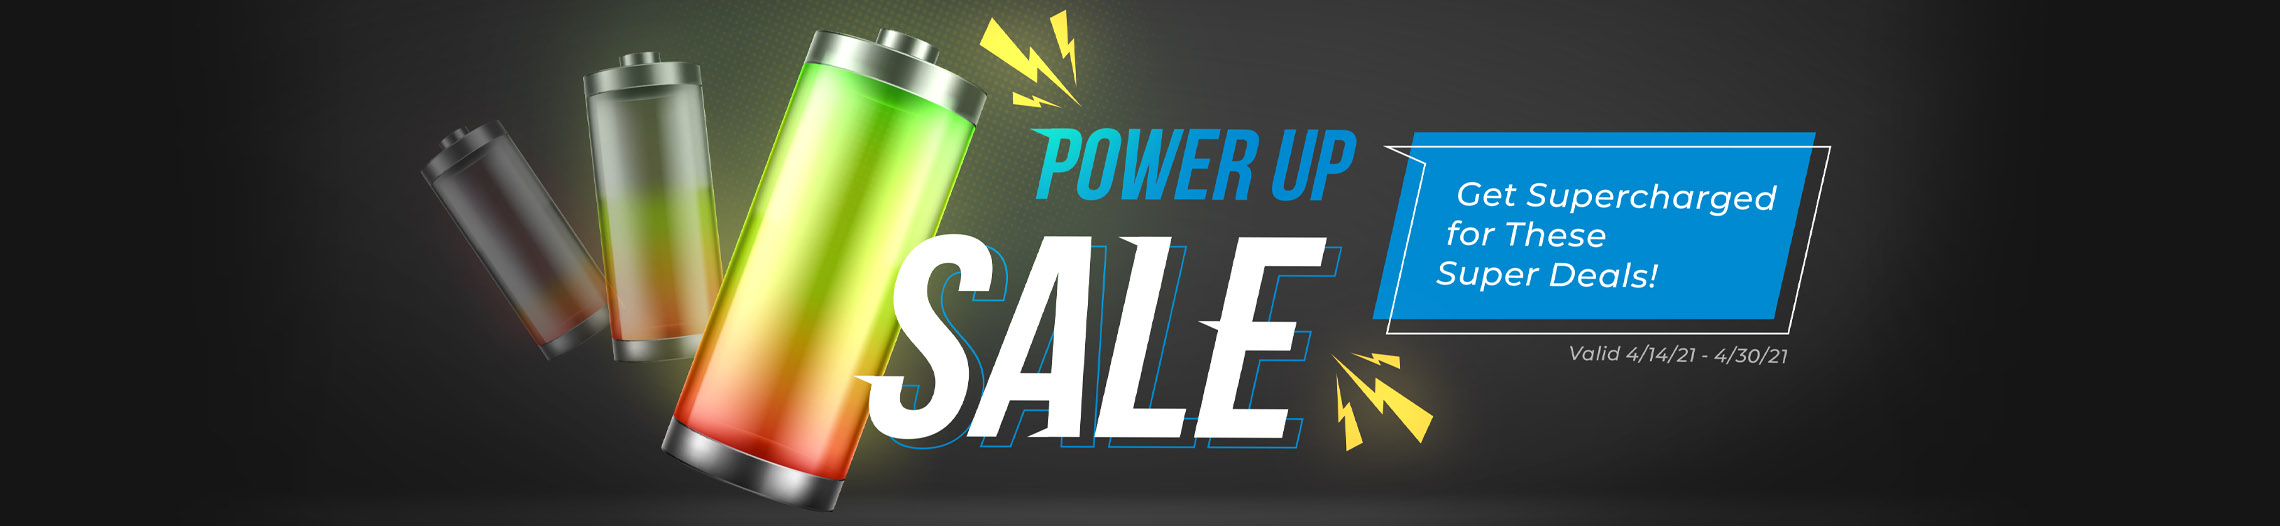 Power Up Sale!